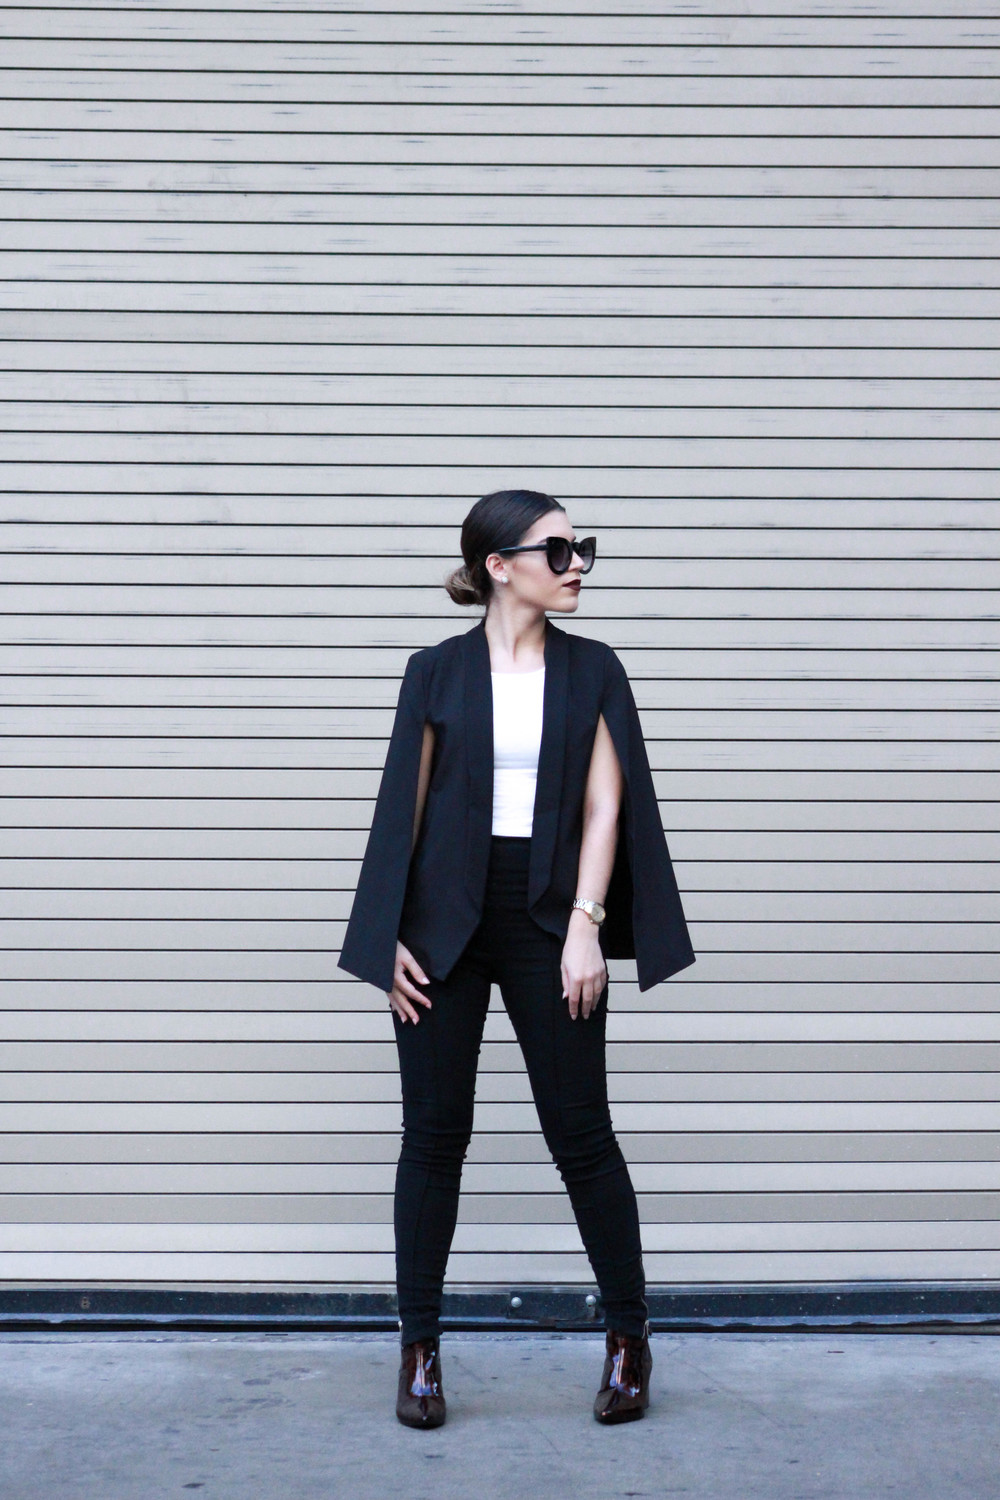 sunglasses SunglassSpot // Blazer GoJane // Top & Pants Forever21 // Booties Zara